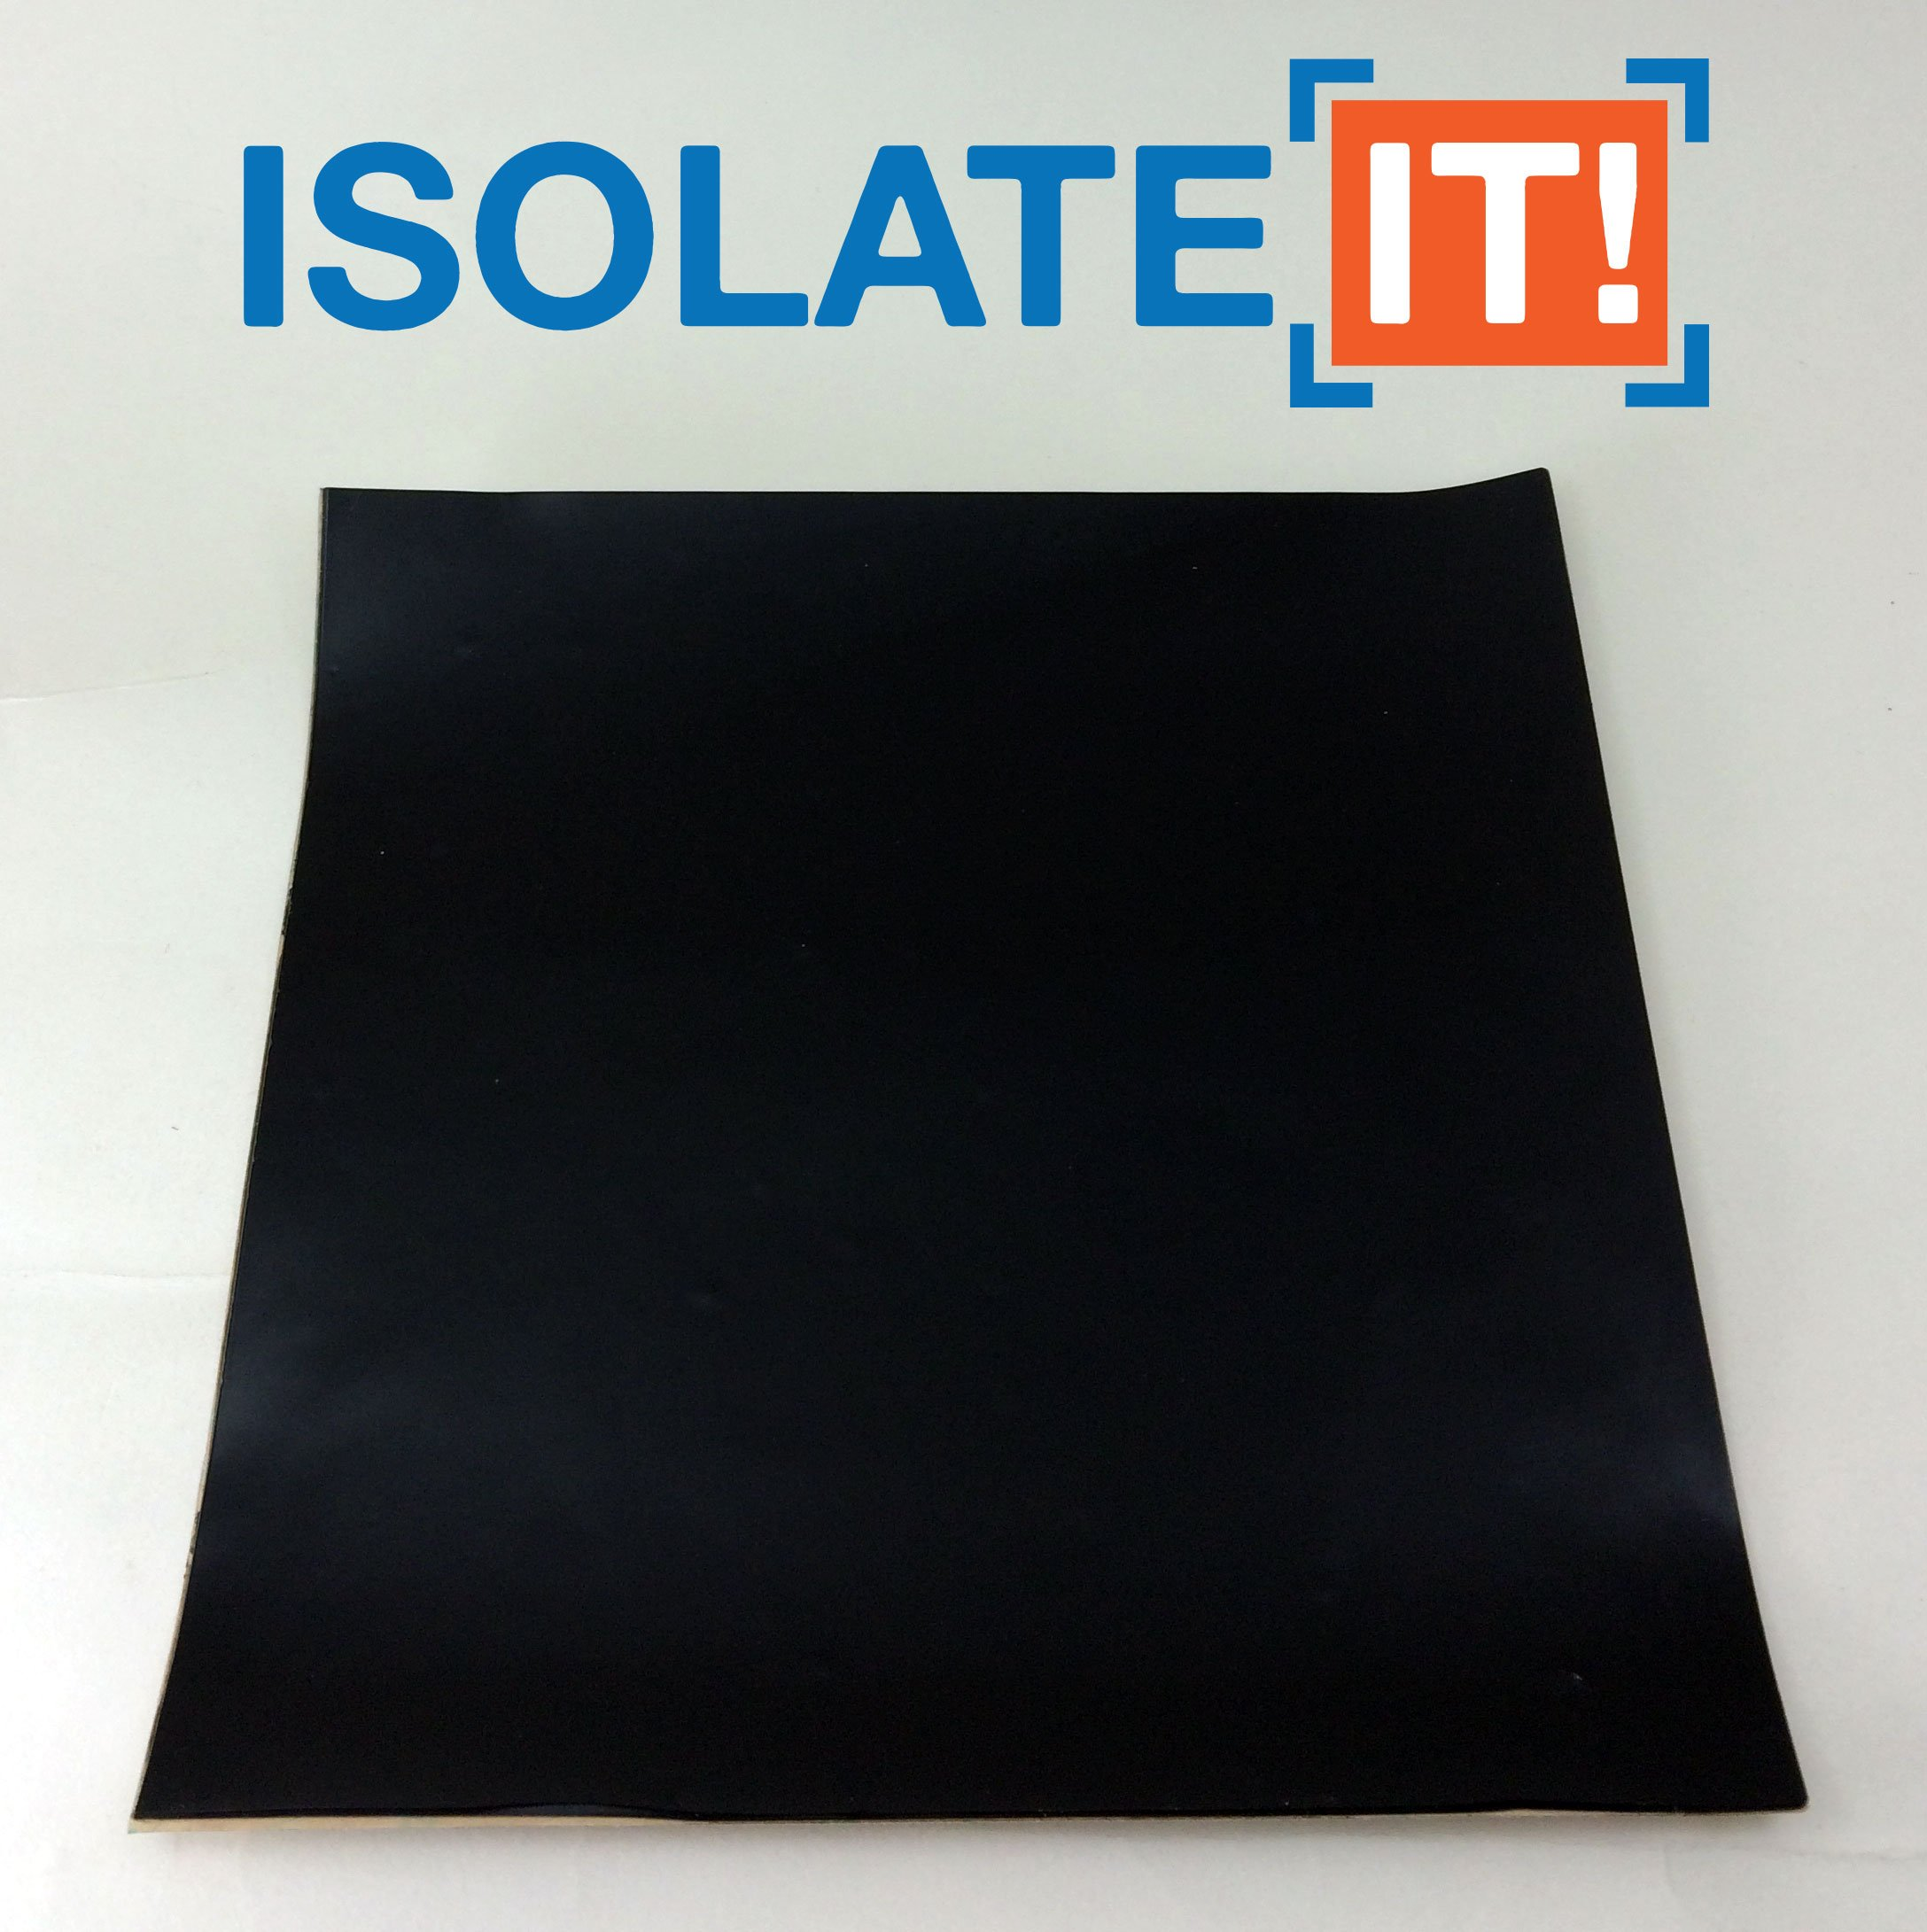 Isolate It!: Sorbothane Acoustic and Vibration Thin Film Square (0.080 x 6 x 6'') with 3M Adhesive 60 Duro - 1 Sheet by Isolate It!